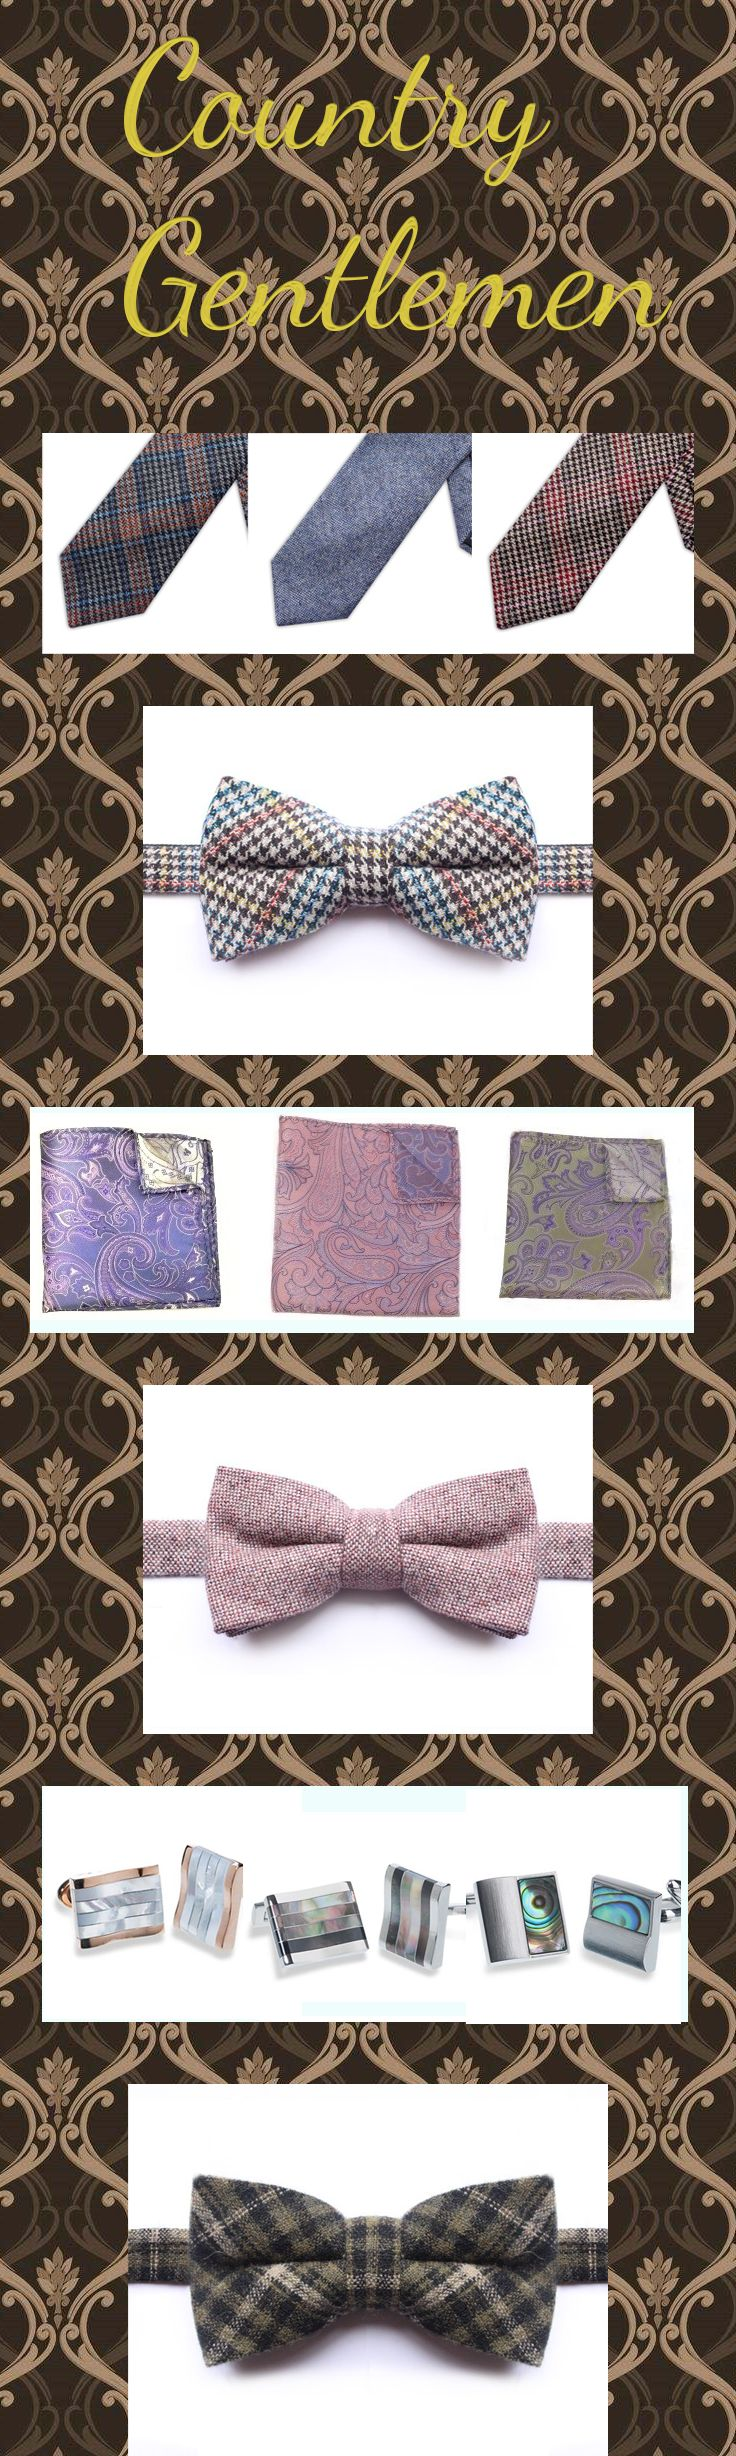 Take a look at our stunning, contemporary collection of silk ties, wool ties and matching pocket squares and cufflinks for a classic or contemporary wedding look.  Whether you are the groom, the best man or a VIP guest you will find your perfect accessory.  Read our blog with more ideas at  https://lilyhoustondesign.co.uk/blogs/news/gifts-for-your-men  Love, Lily x